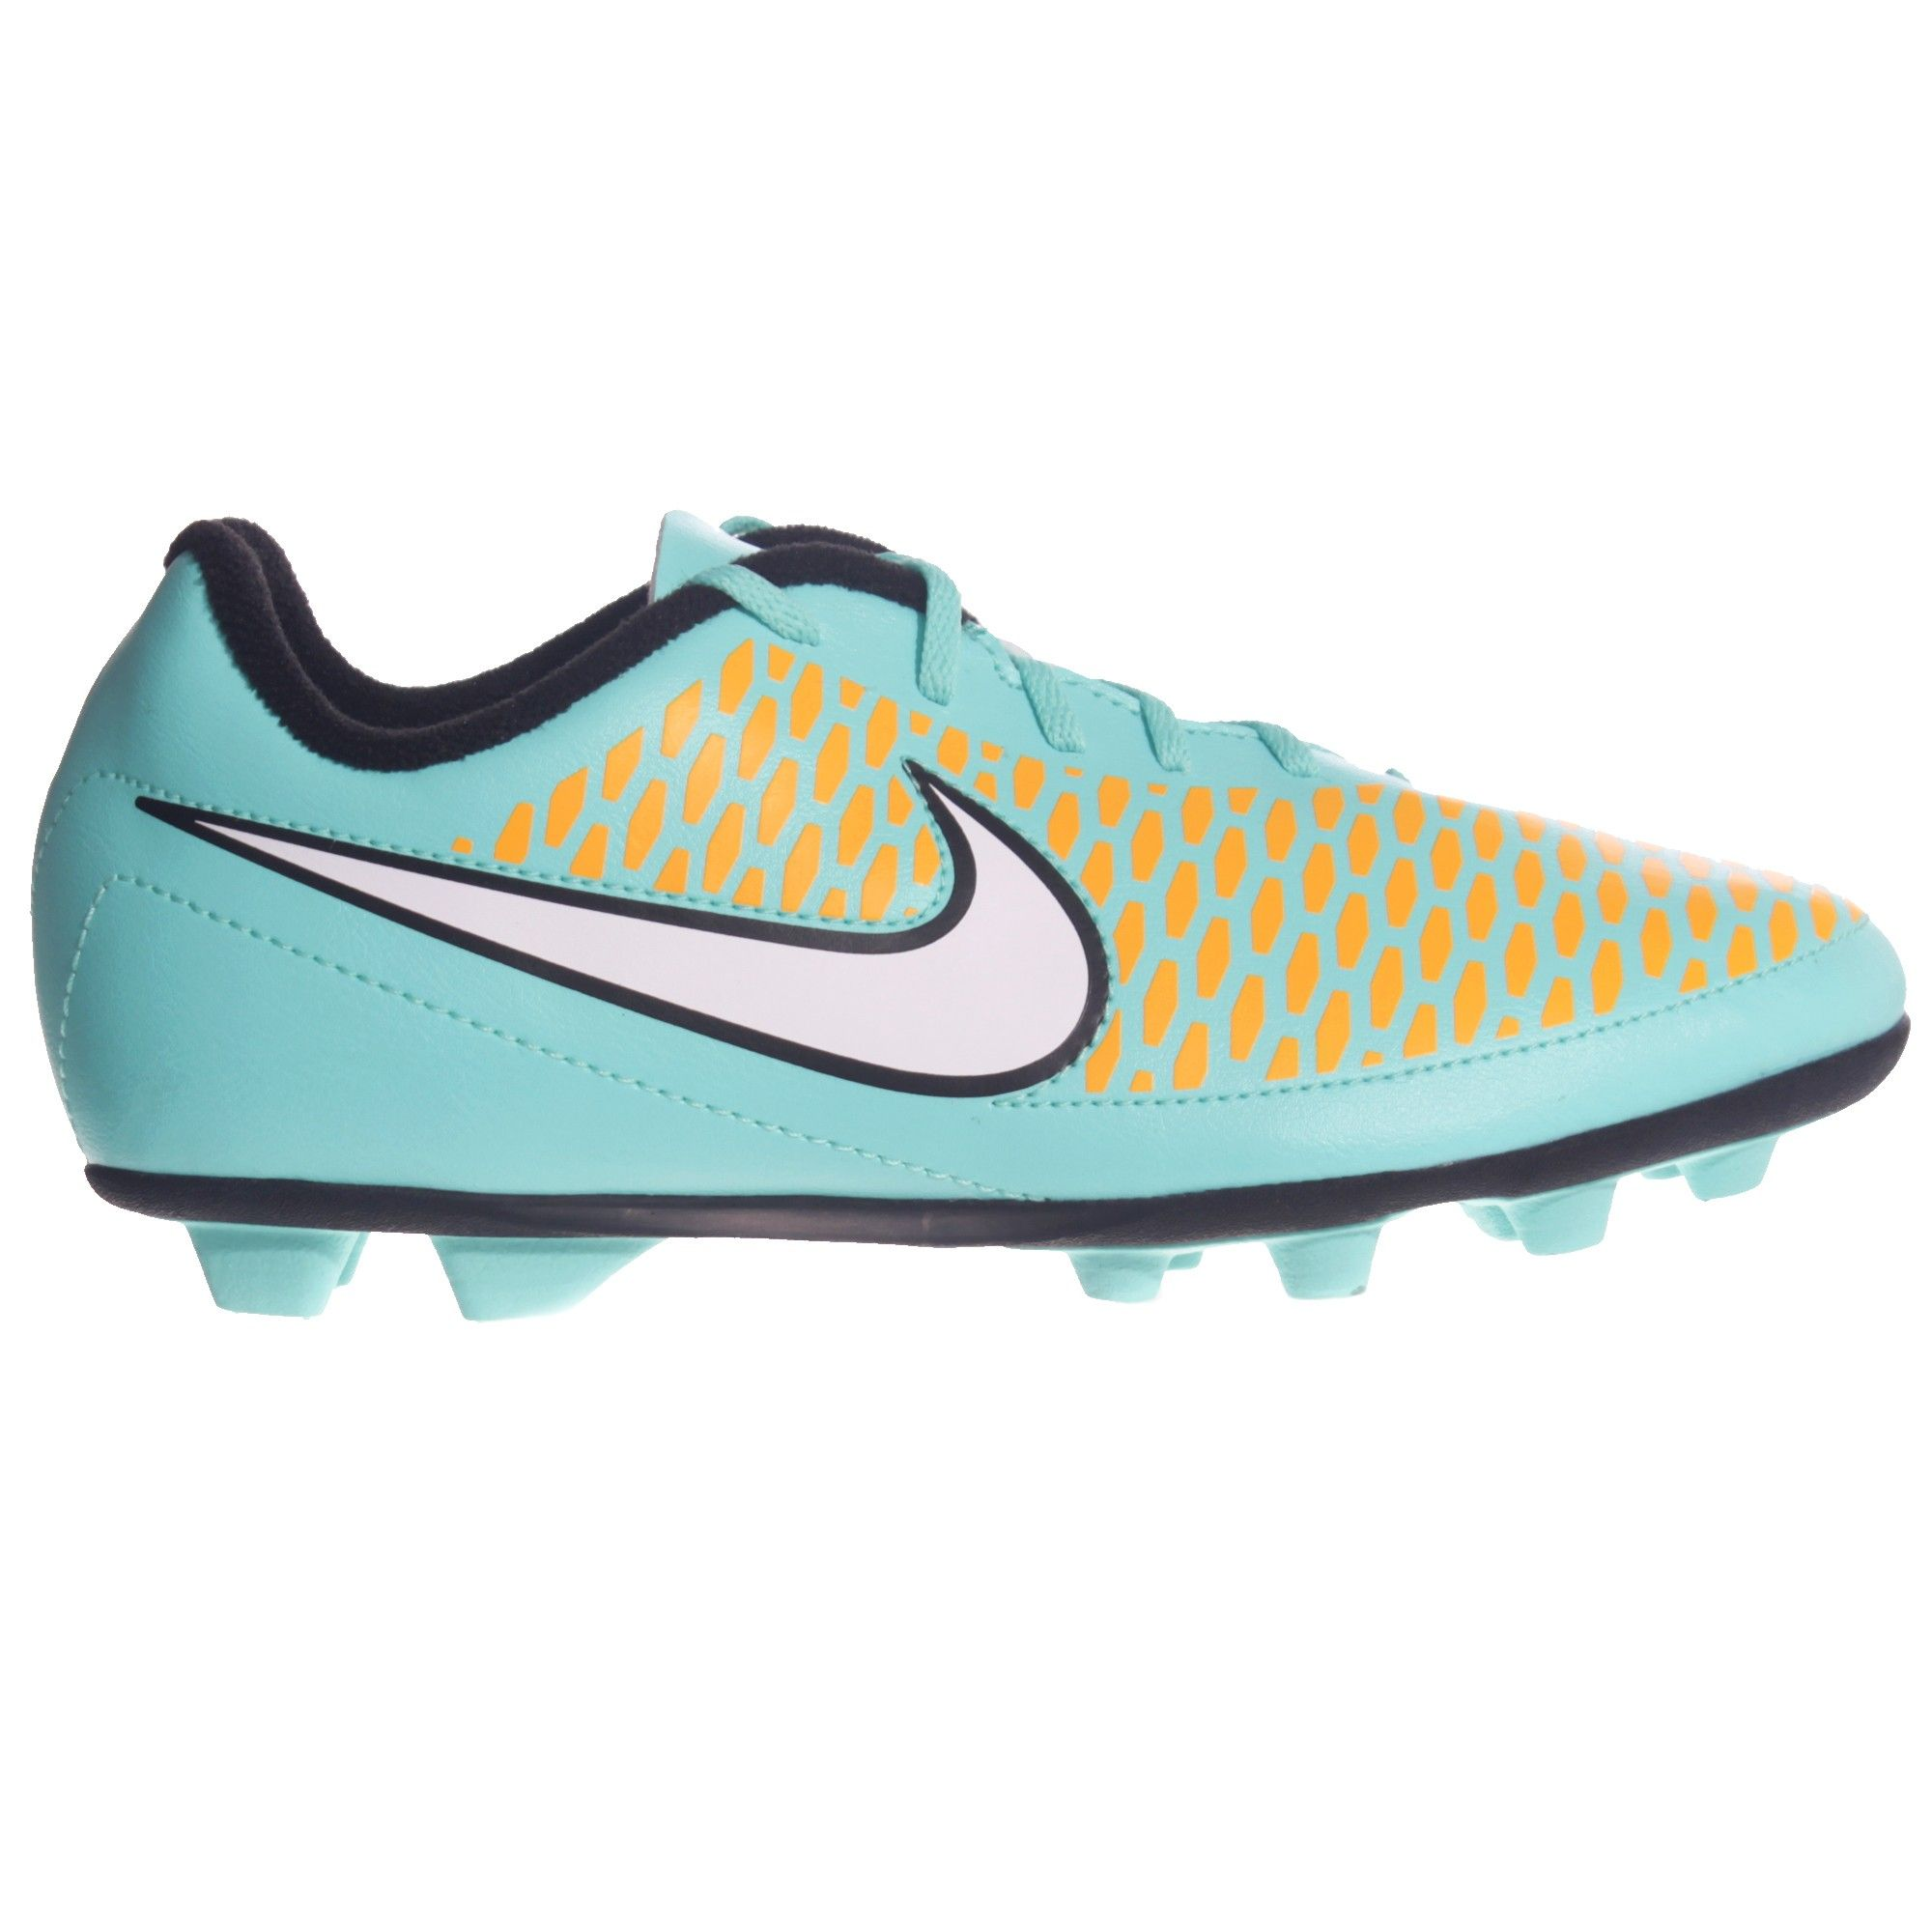 a4e03e8185b NIKE Magista Ola V FG Kids Football Boot